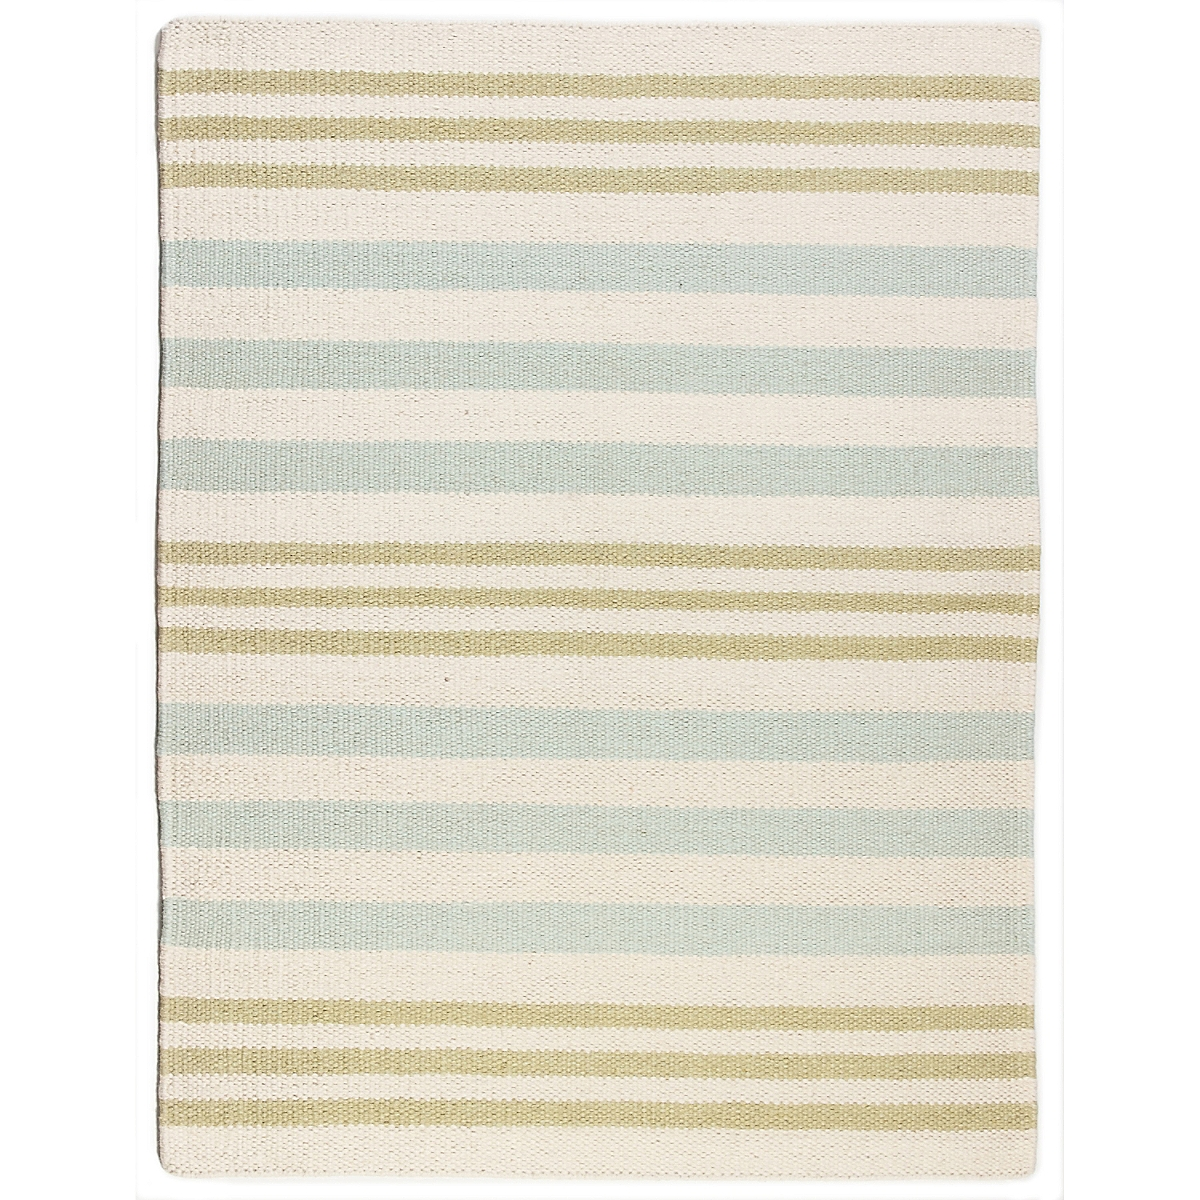 Gross Point Wool Berber Striped Rug